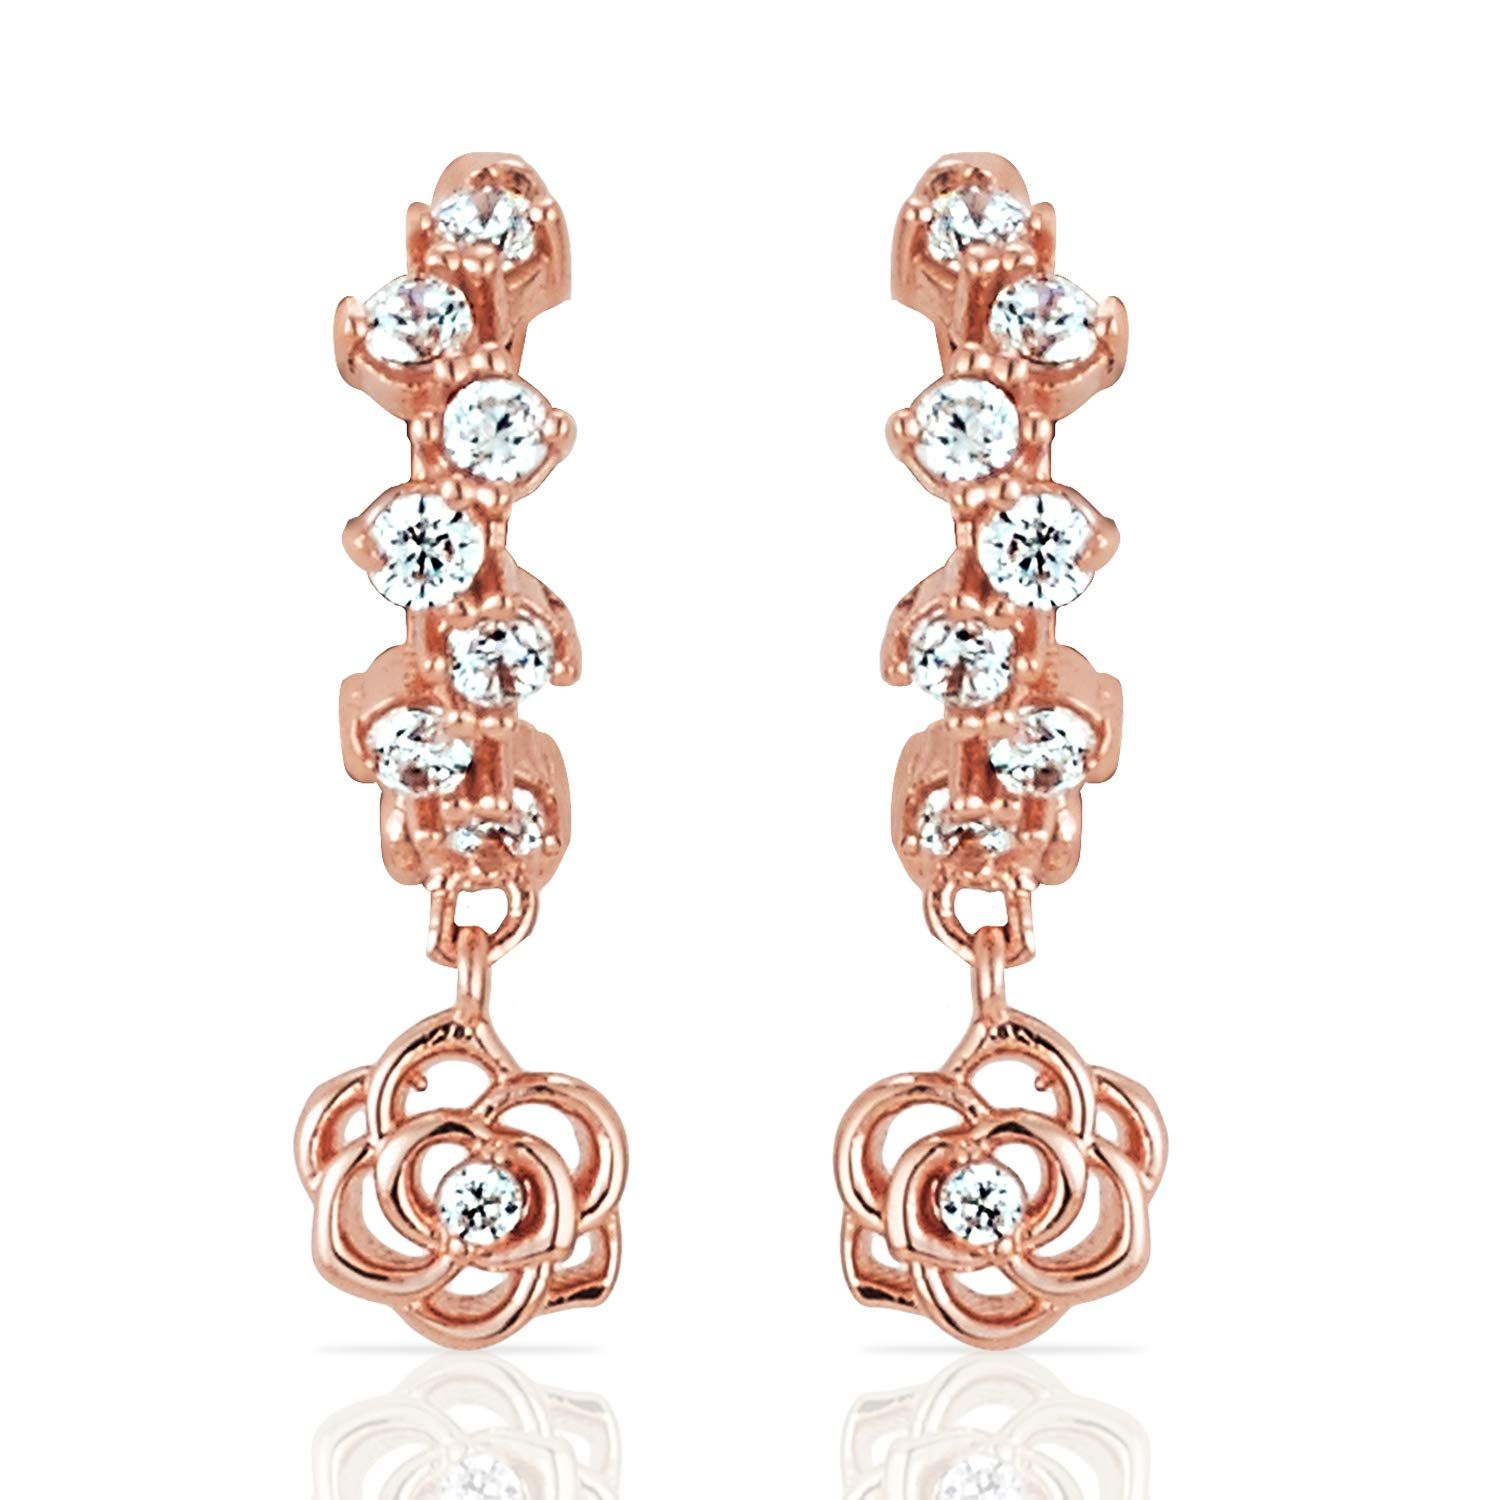 Real 14k Rose Gold Offset Pave Hoop Earrings with Filligree Rose and CZ for Women and Girls